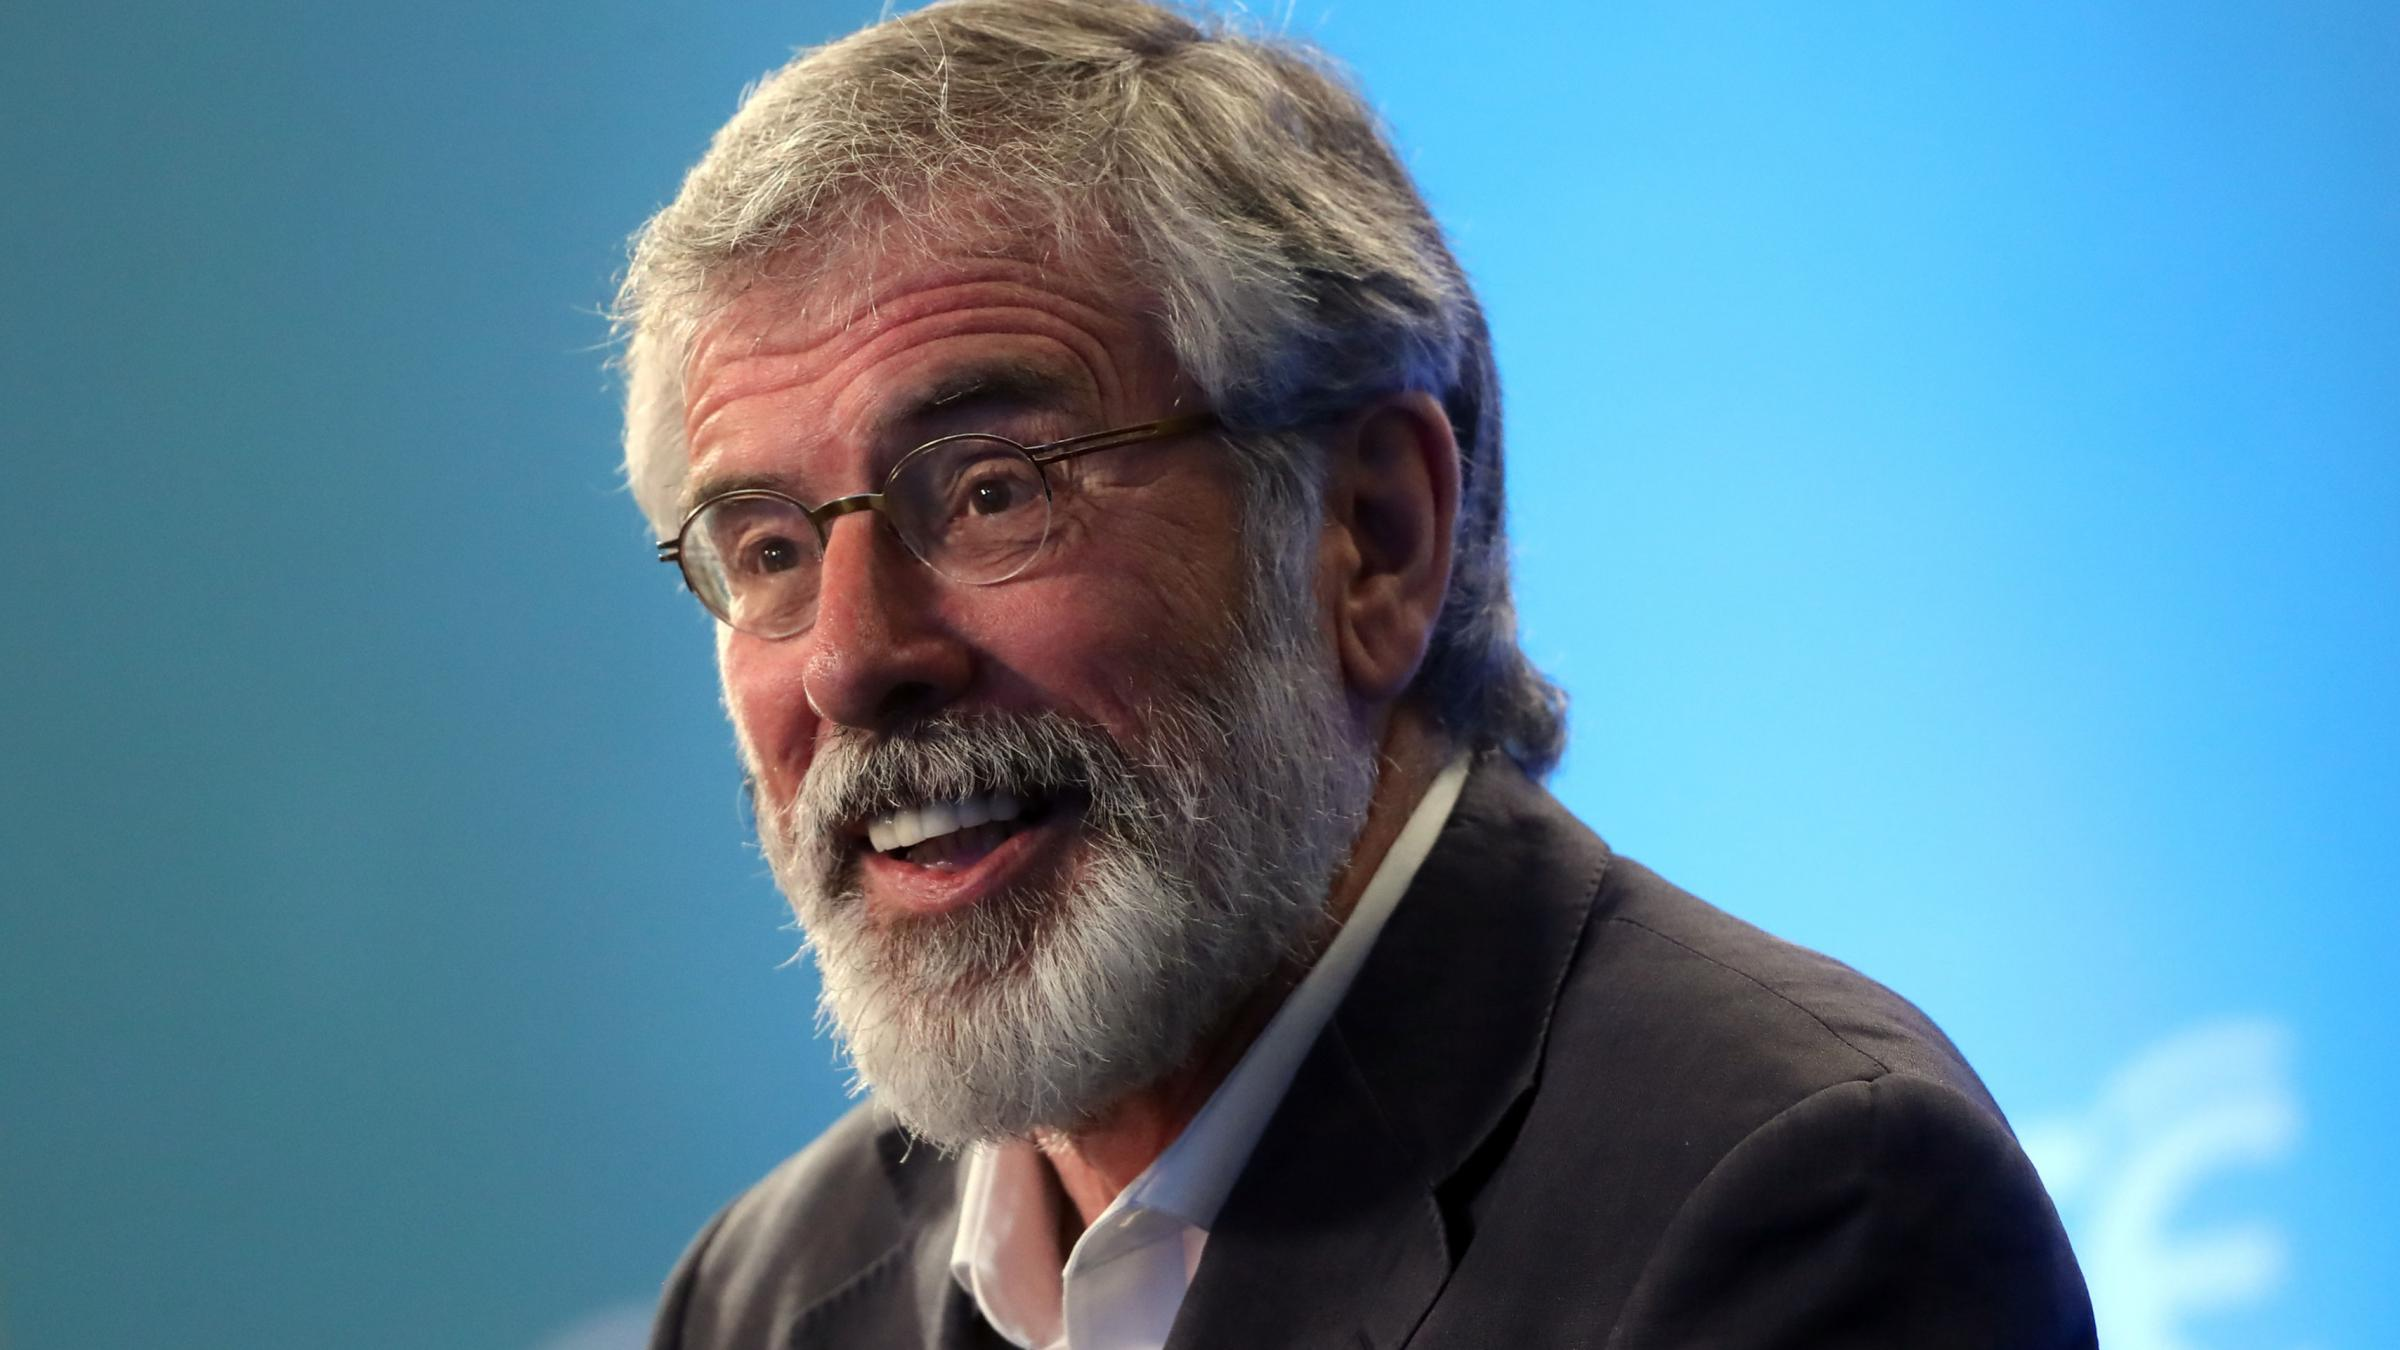 Theresa May will meet with Sinn Fein's Gerry Adams today